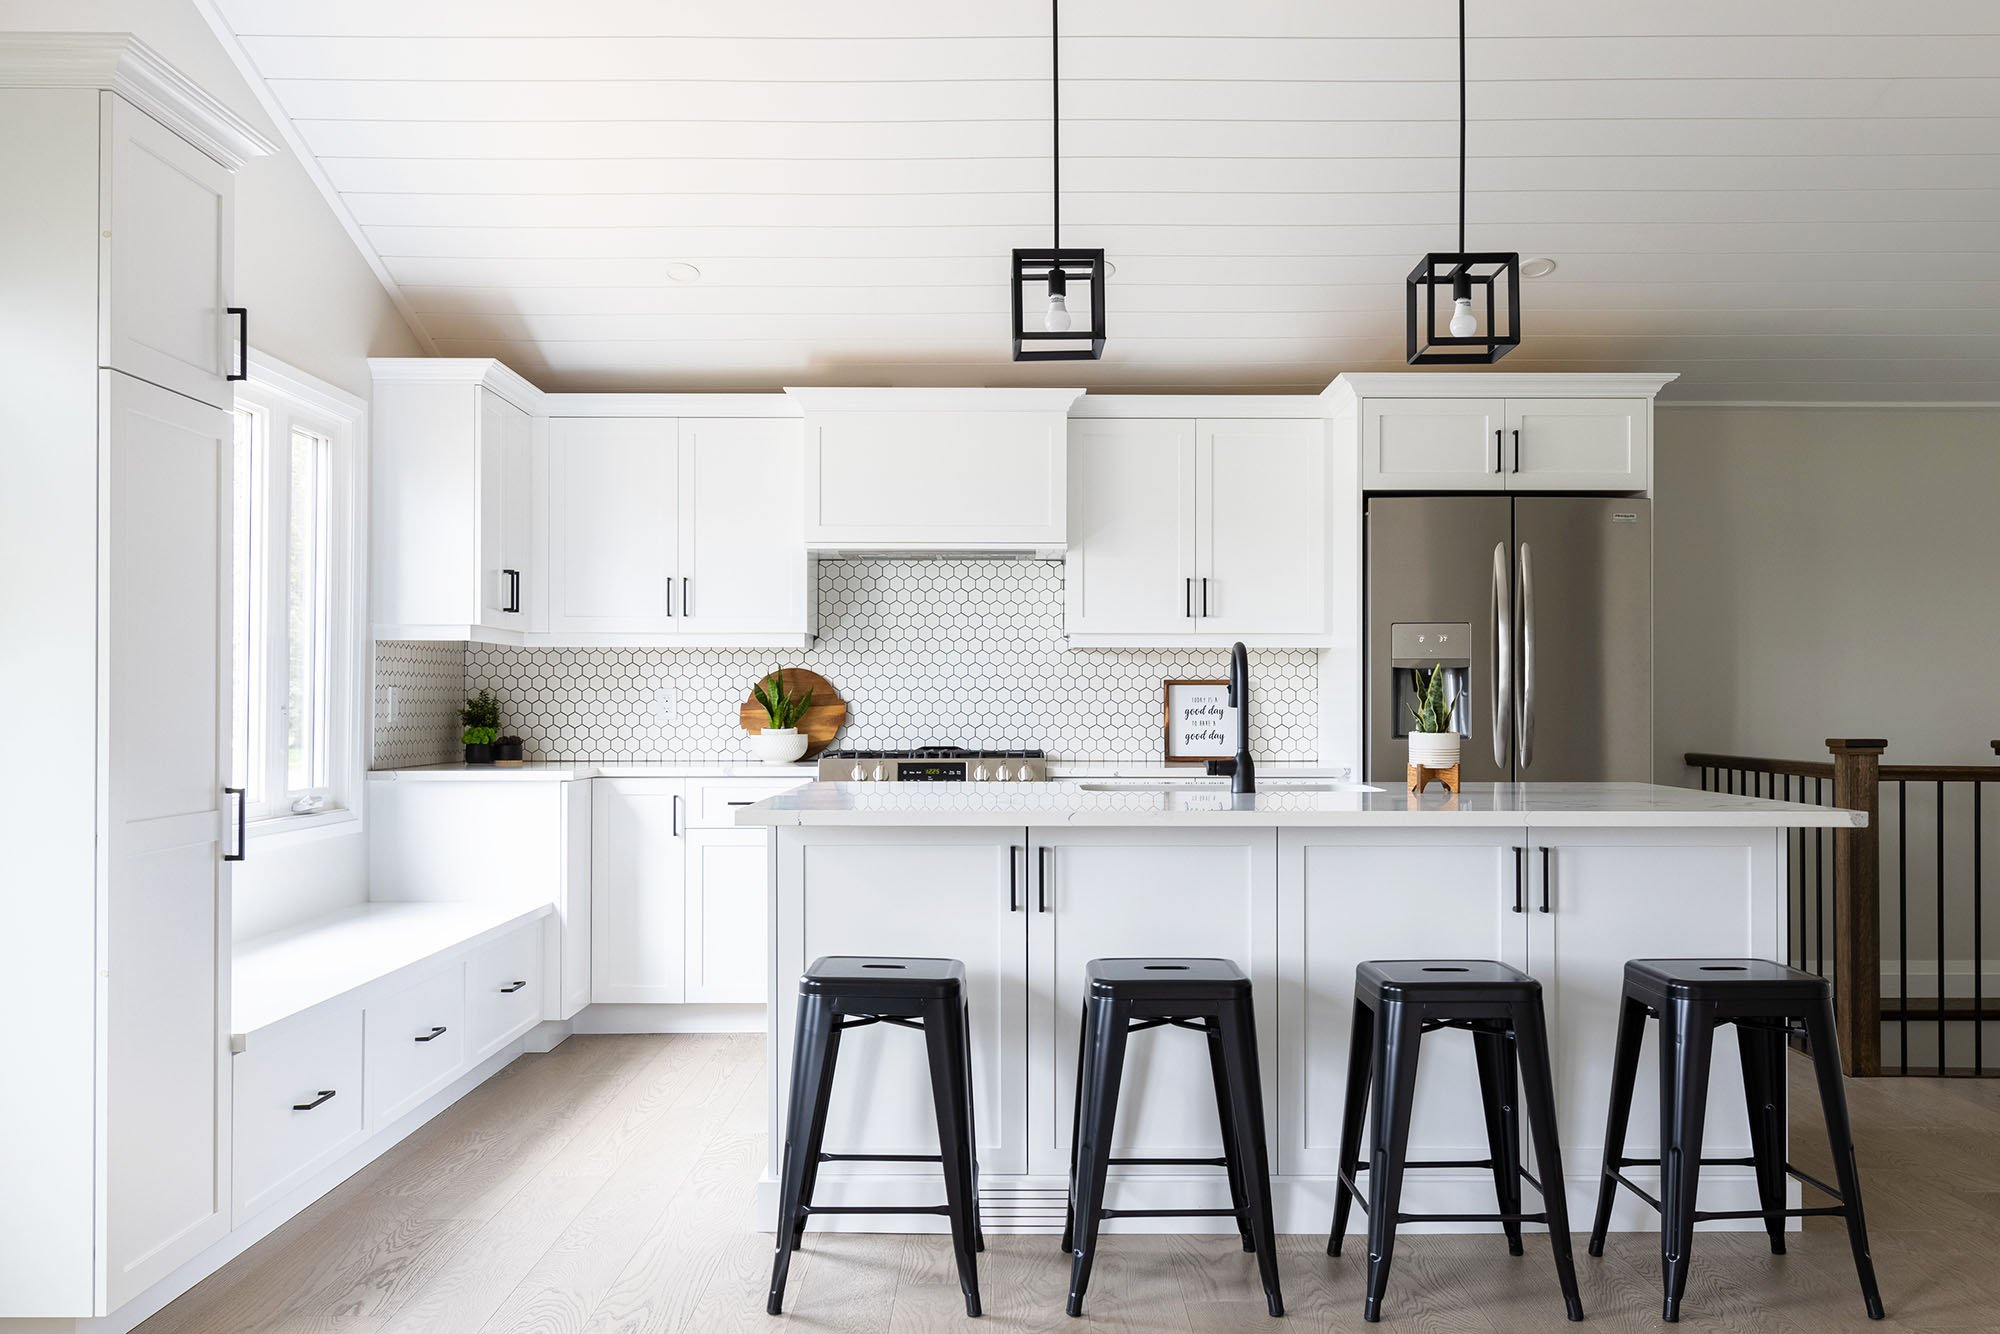 Azule Kitchens- Want to Elevate your Kitchen with Modern Designs?